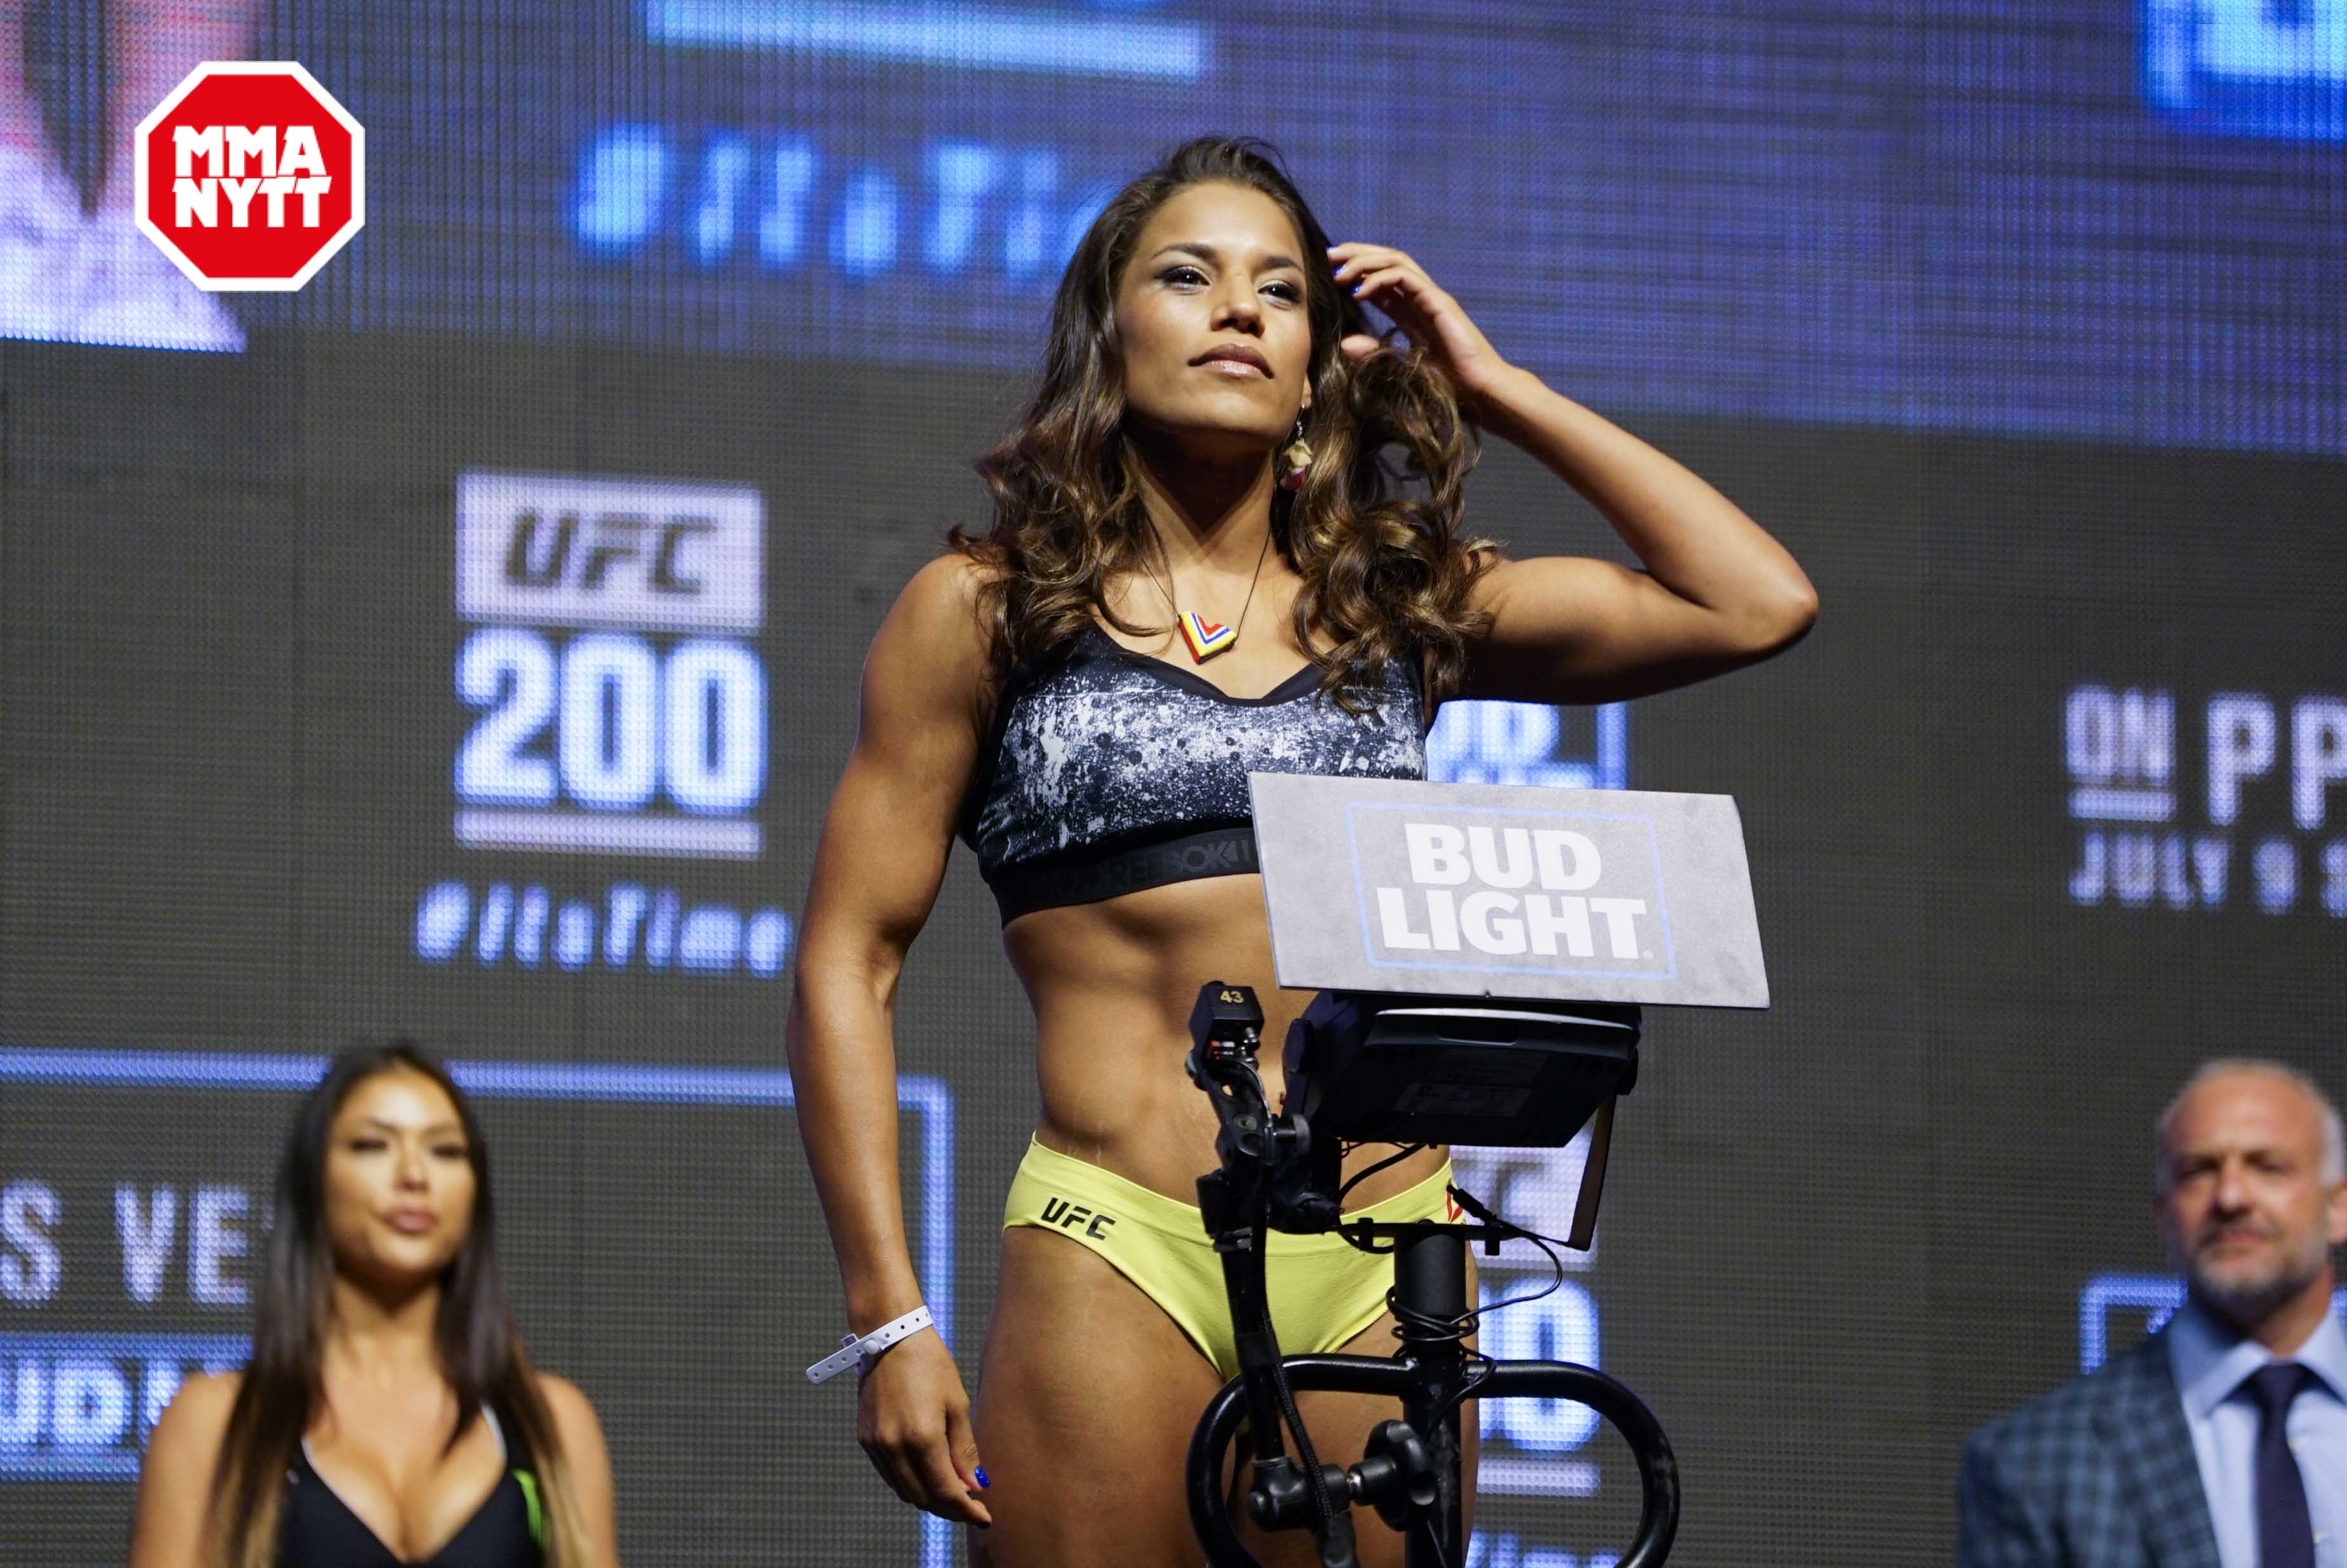 UFC 200 Las Vegas Weigh Ins 2016-07-08 Julianna Pena photo MMAnytt.se Vince Cachero (74 of 155)